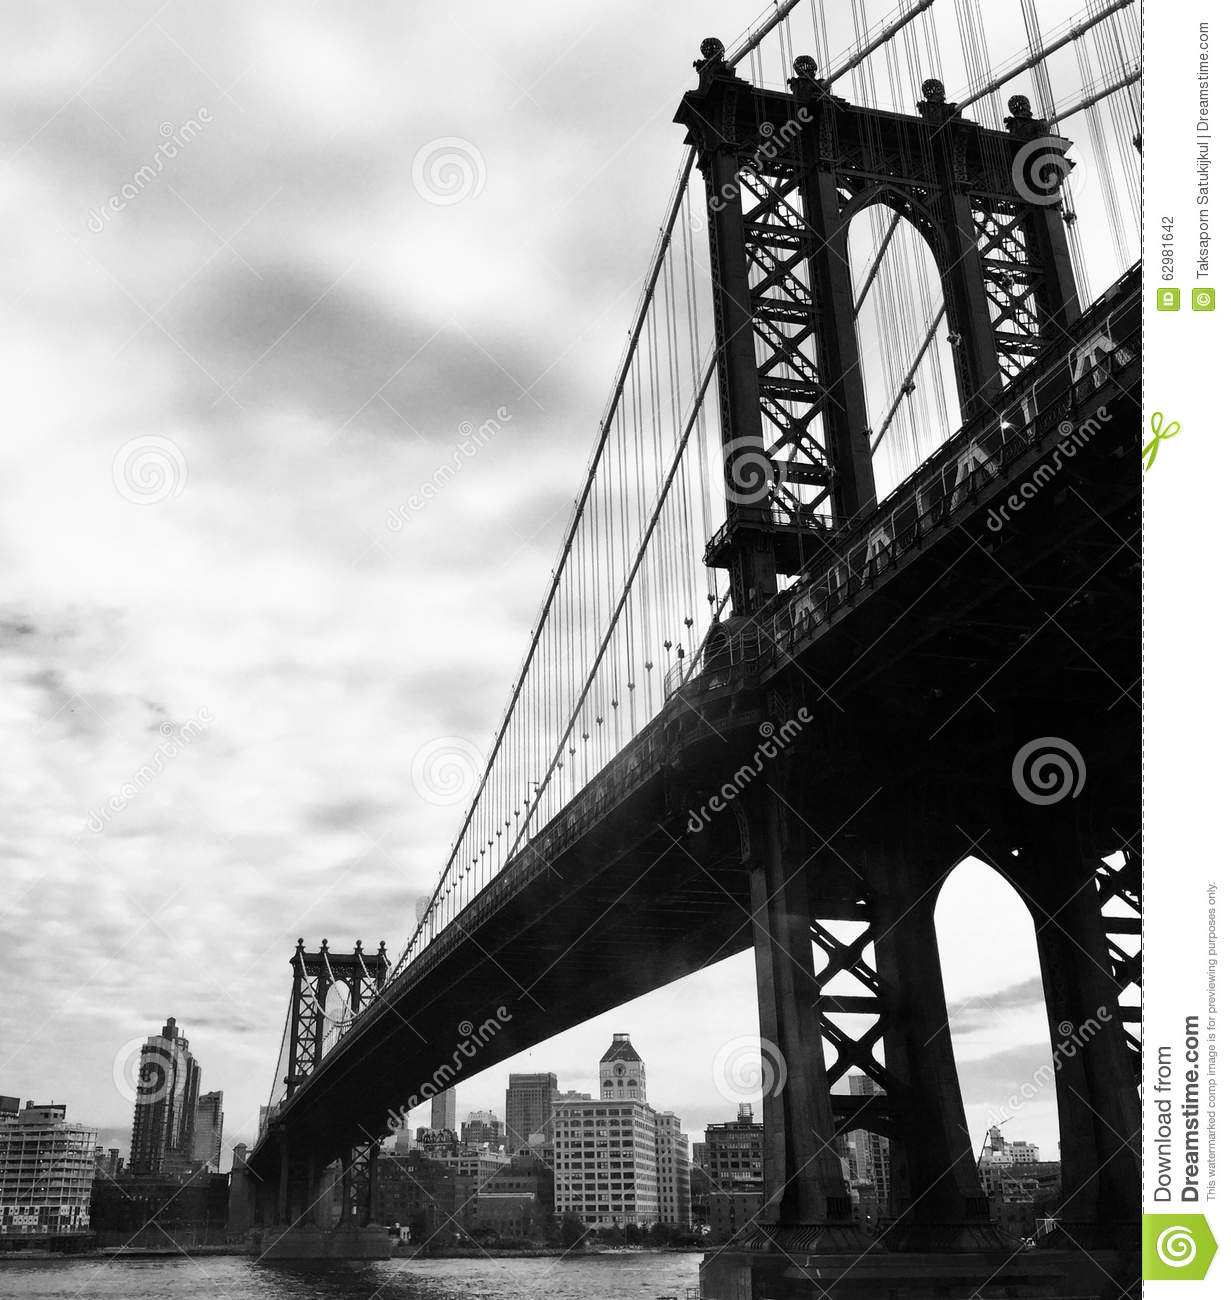 pont de manhattan dans le style noir et blanc de photo new york etats unis photo stock image. Black Bedroom Furniture Sets. Home Design Ideas